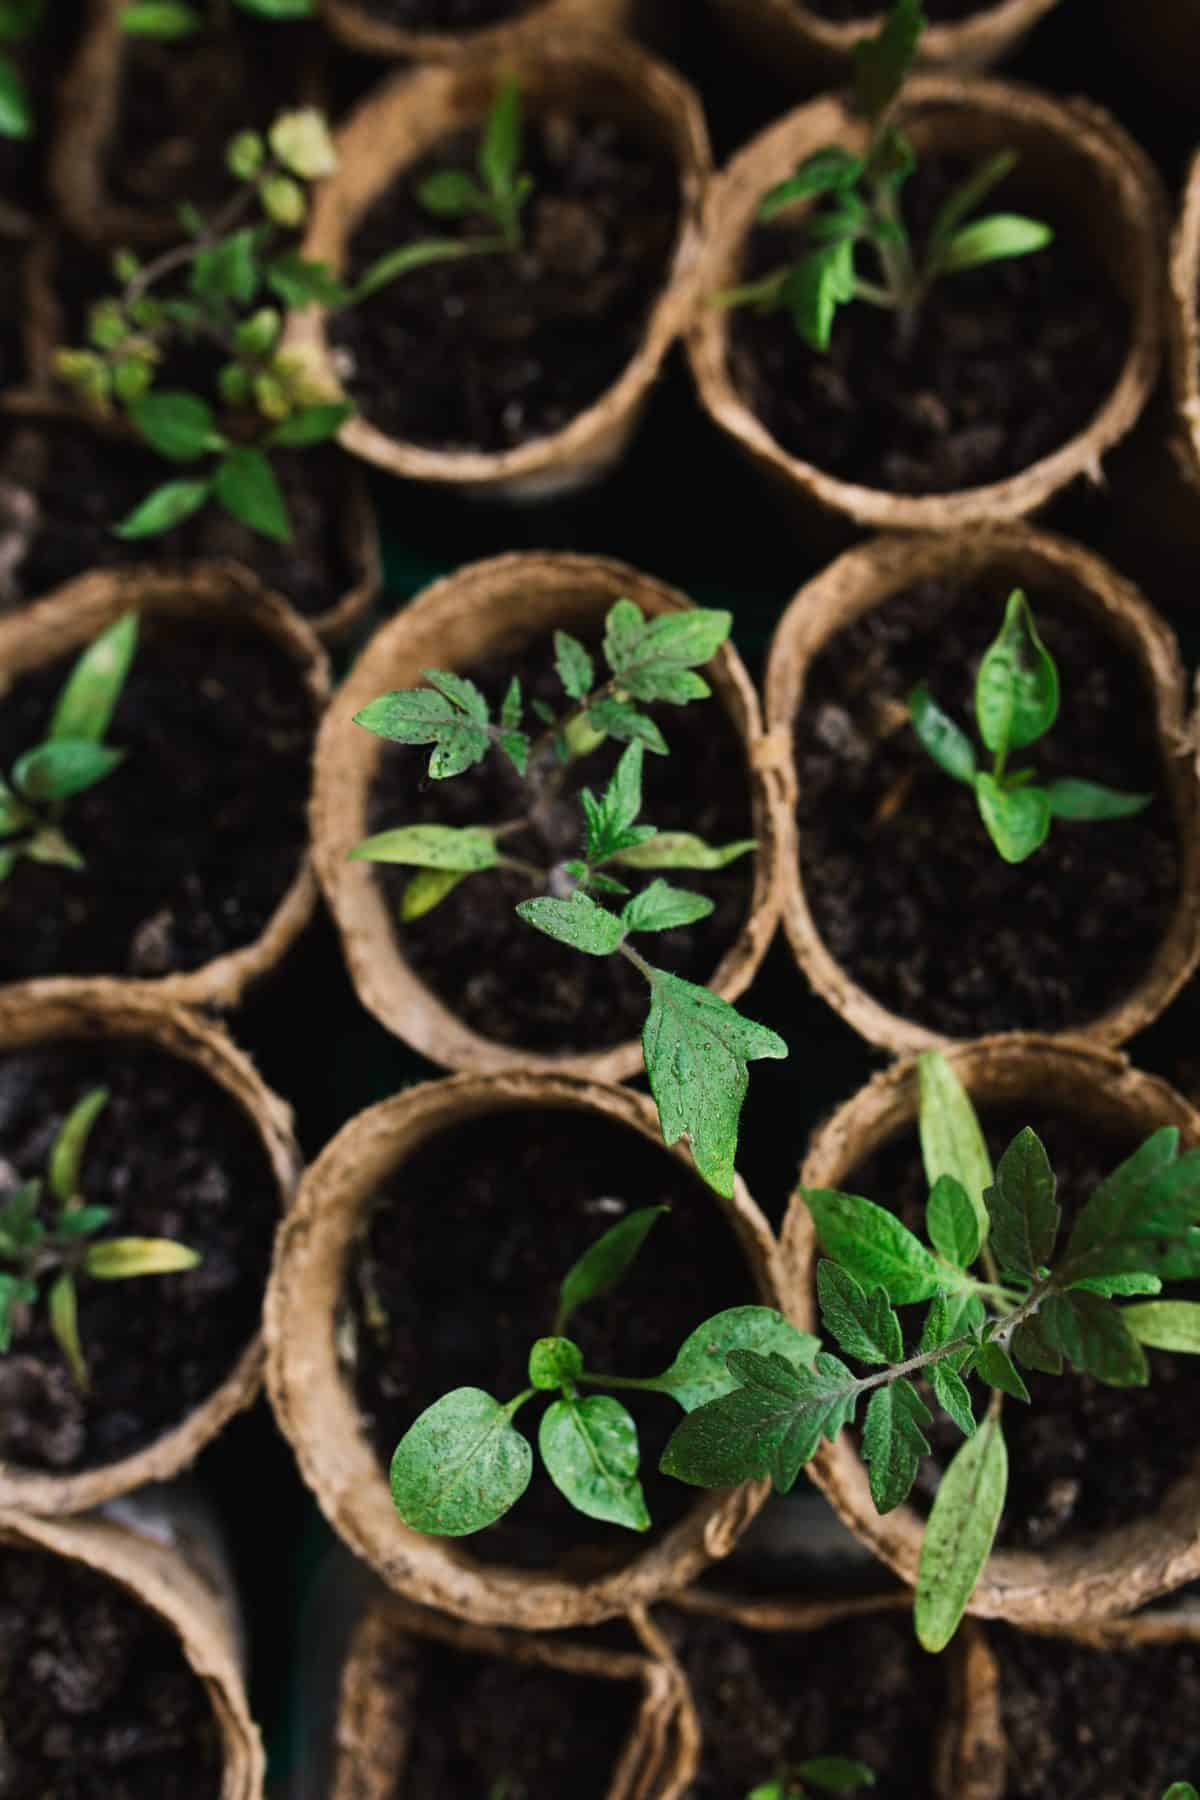 Plant starters sit in small peat pots.